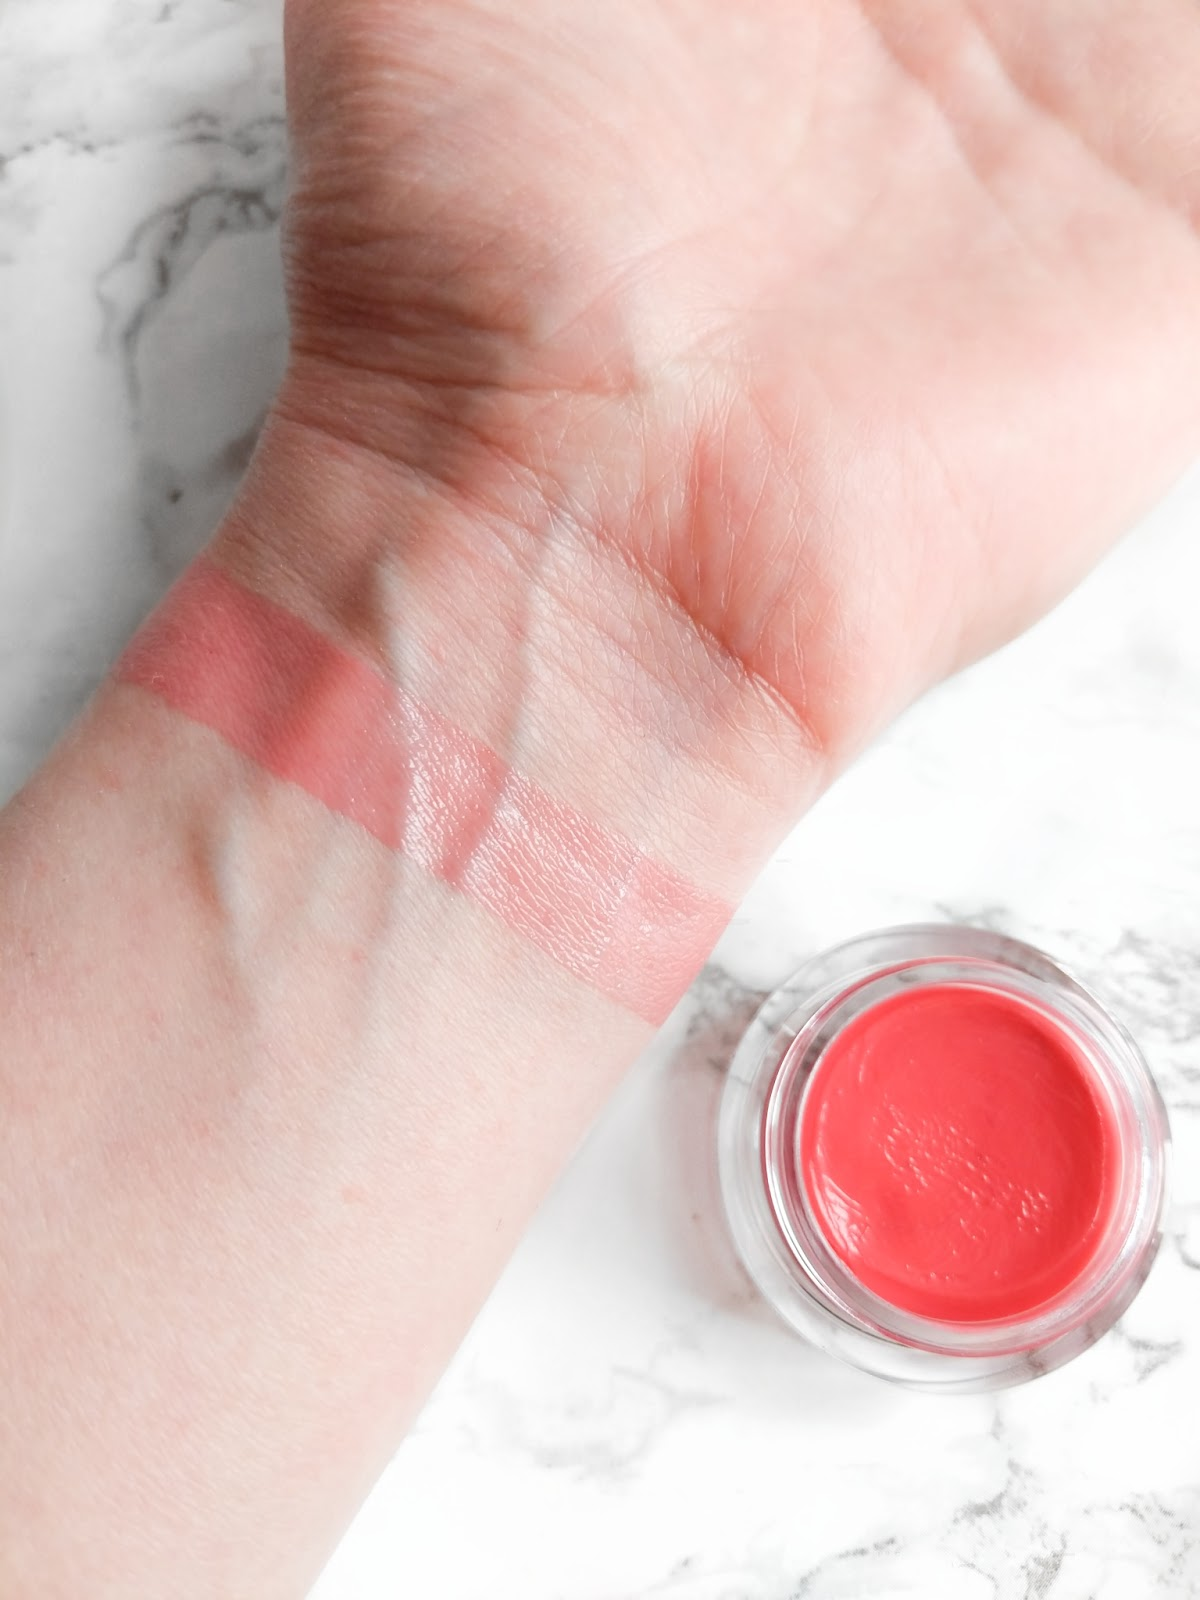 Image of Trinny London Lip Glow Lip Gloss swatch in shade Cordy